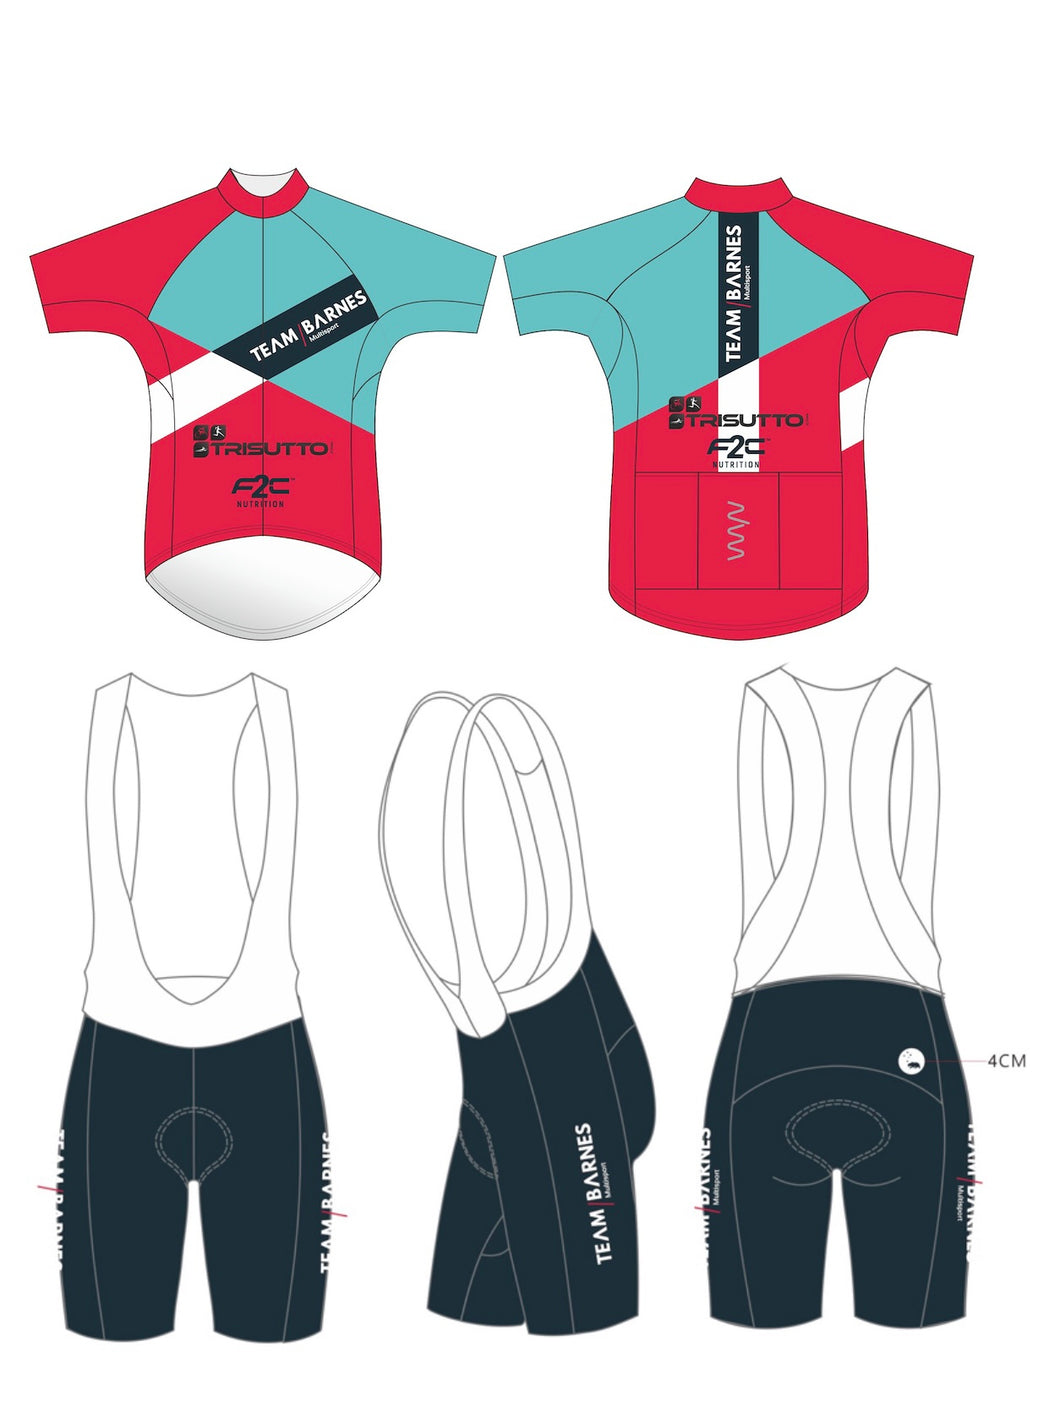 TEAM BARNES premium cycling kit (jersey + bib shorts) - men's